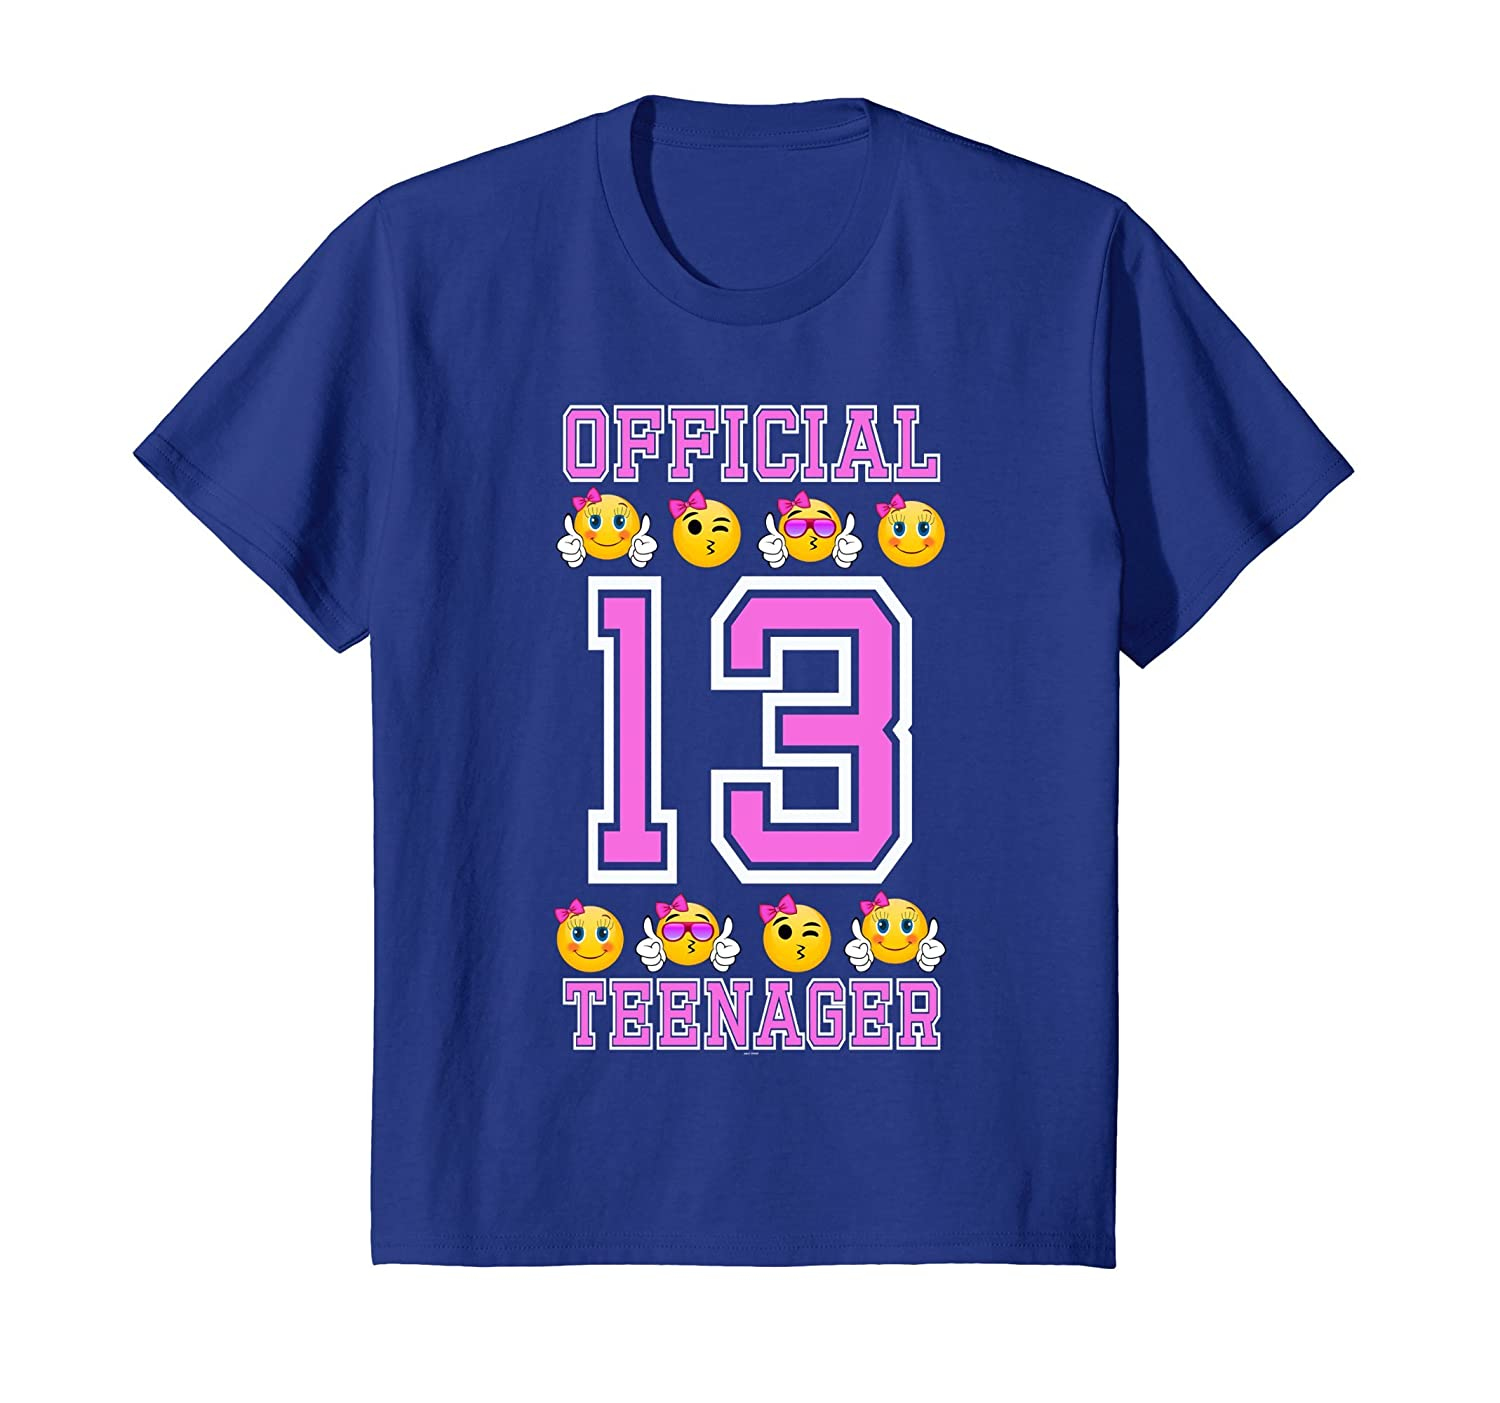 Emojicon 13th birthday gifts for teenagers age 13 girls Tee